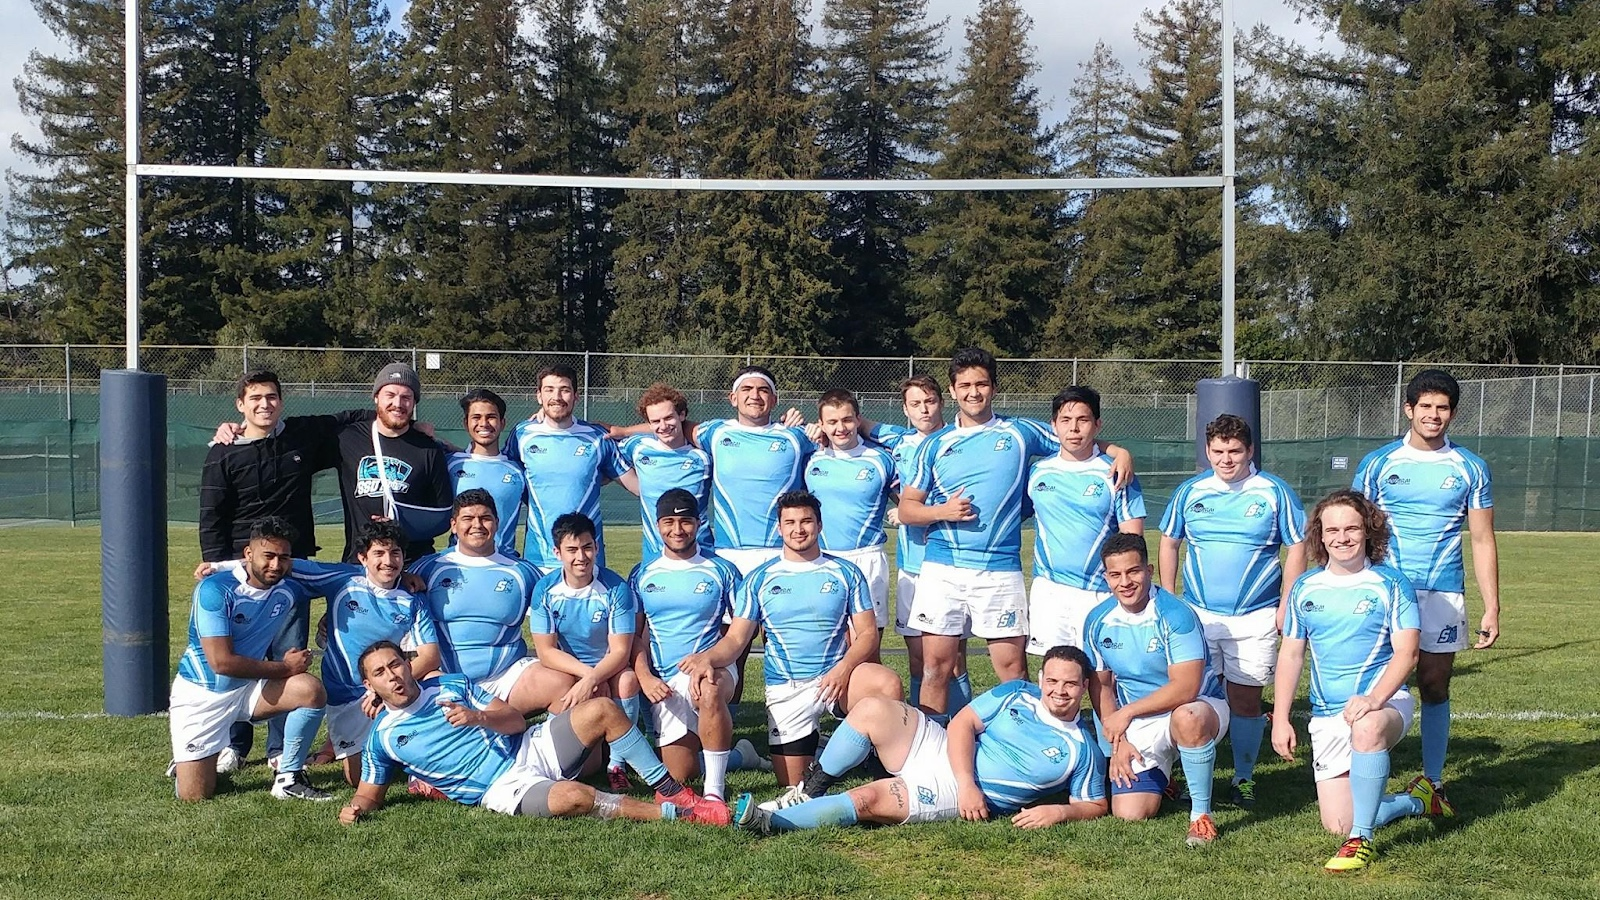 COURTESY // Sonoma State Rugby club   The Sonoma State men's rugby team.